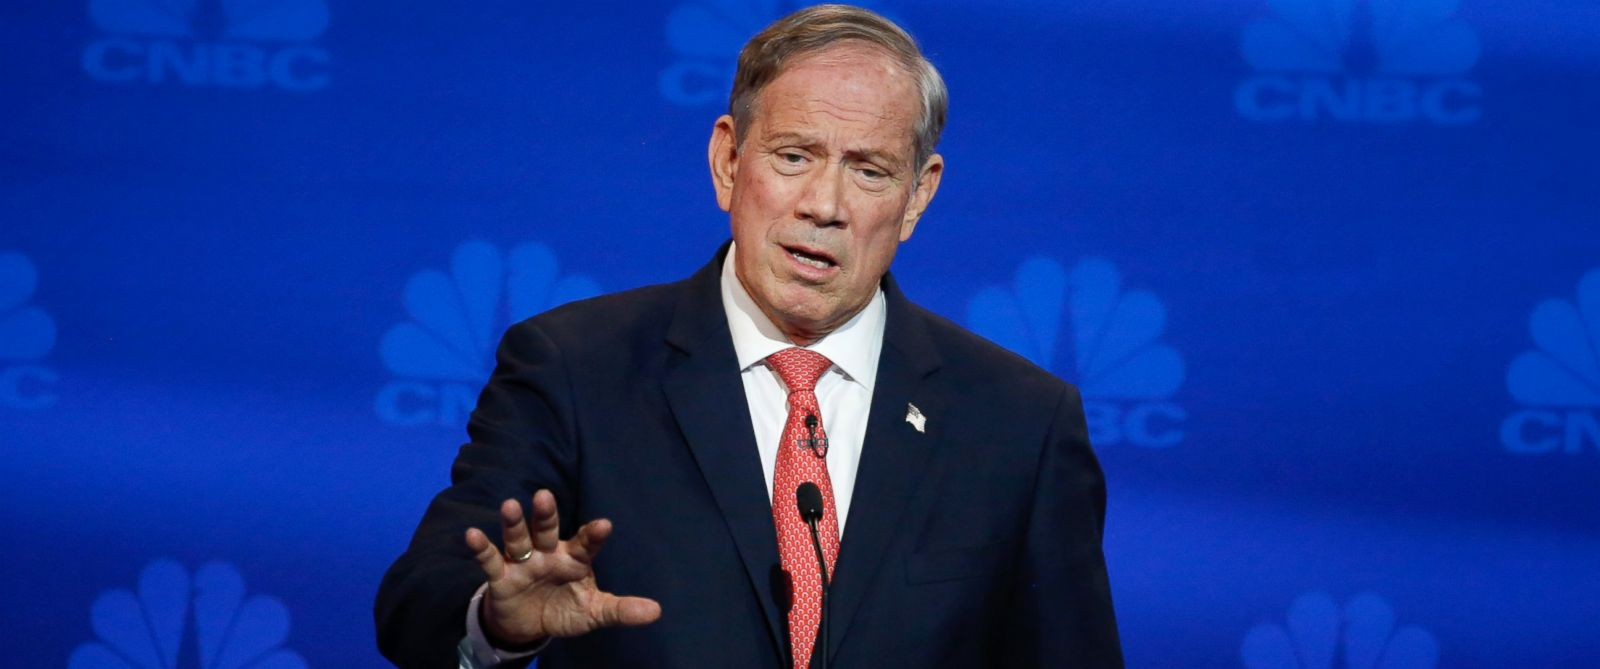 """PHOTO: George Pataki participates in CNBCs """"Your Money, Your Vote: The Republican Presidential Debate"""" live from the University of Colorado Boulder in Boulder, Color., Oct. 28, 2015."""